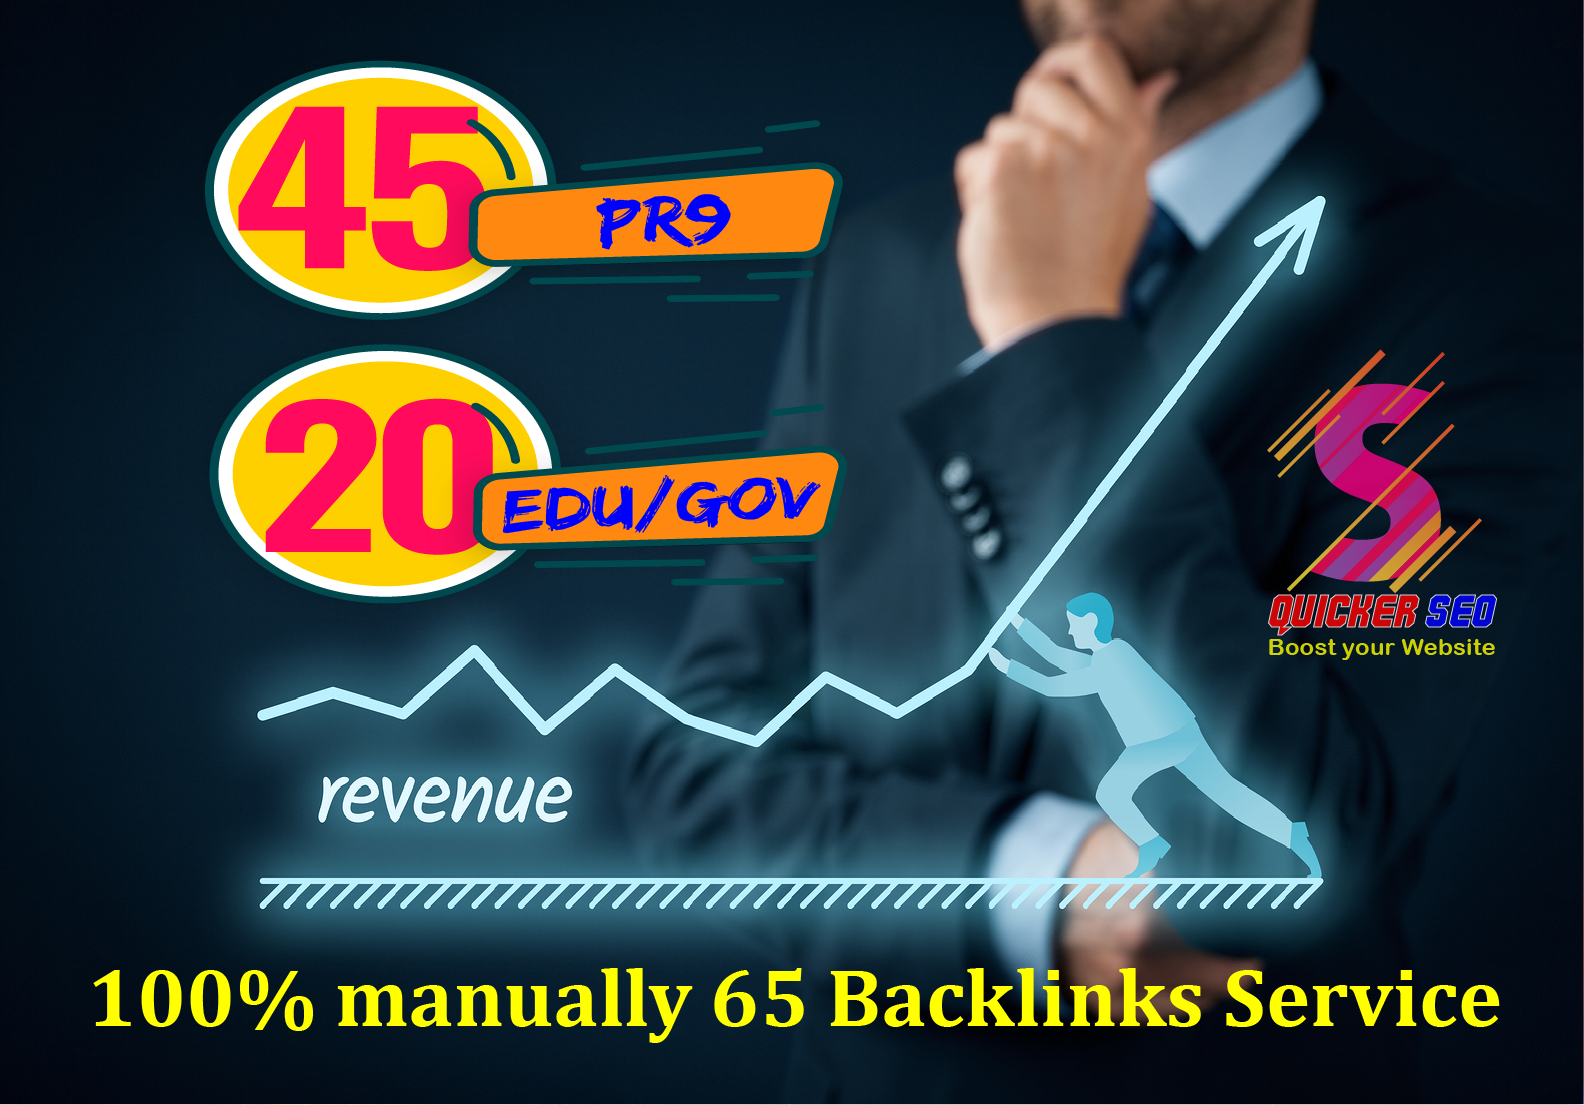 45 Pr9 Dofollow + 20 Edu - Gov High Authority SEO Backlinks - Fire Your Google Ranking